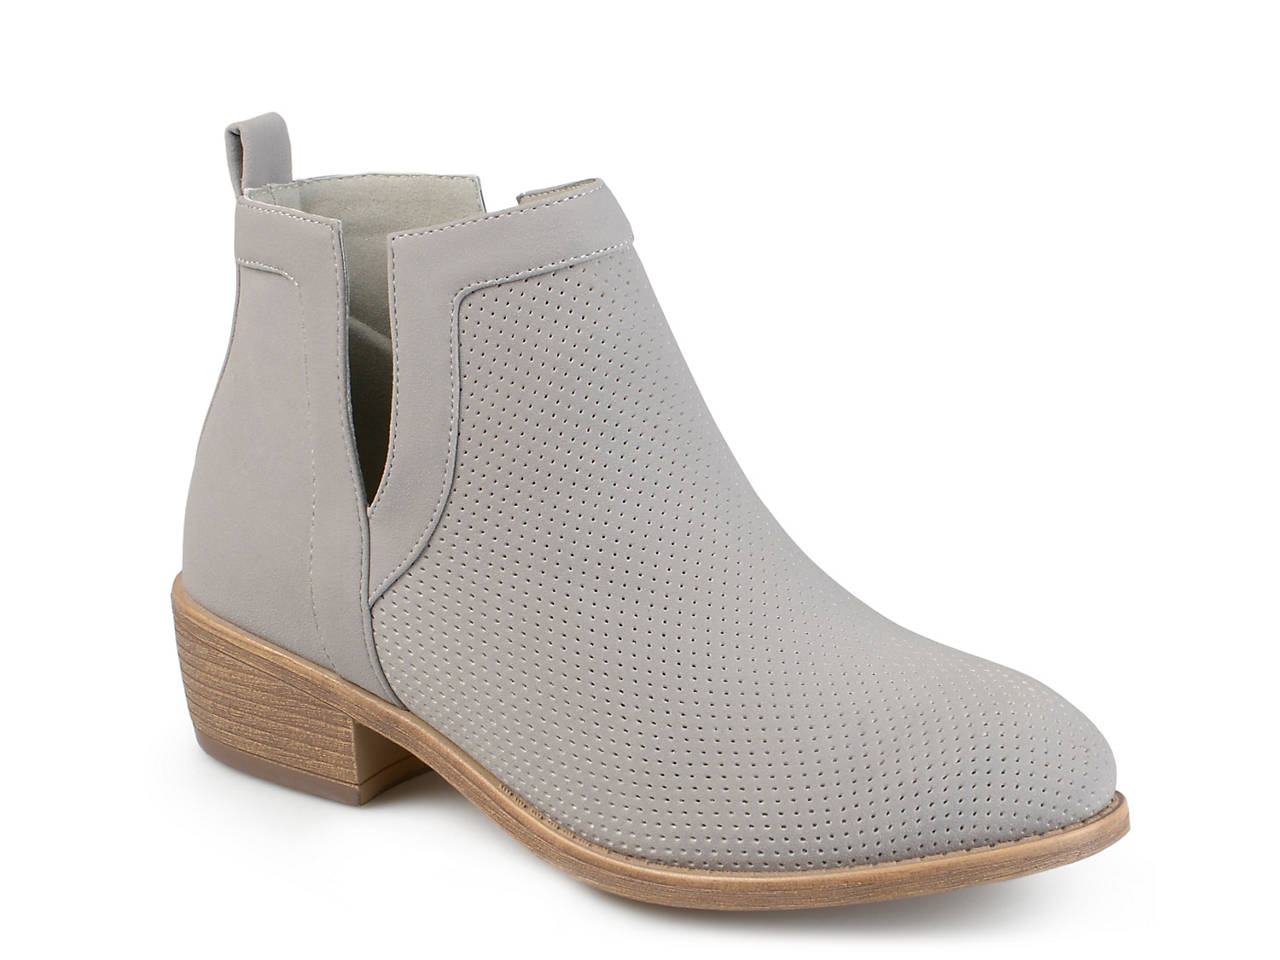 Journee Collection Bristl ... Women's Ankle Boots wholesale online cheap best place OpH49FgcZ